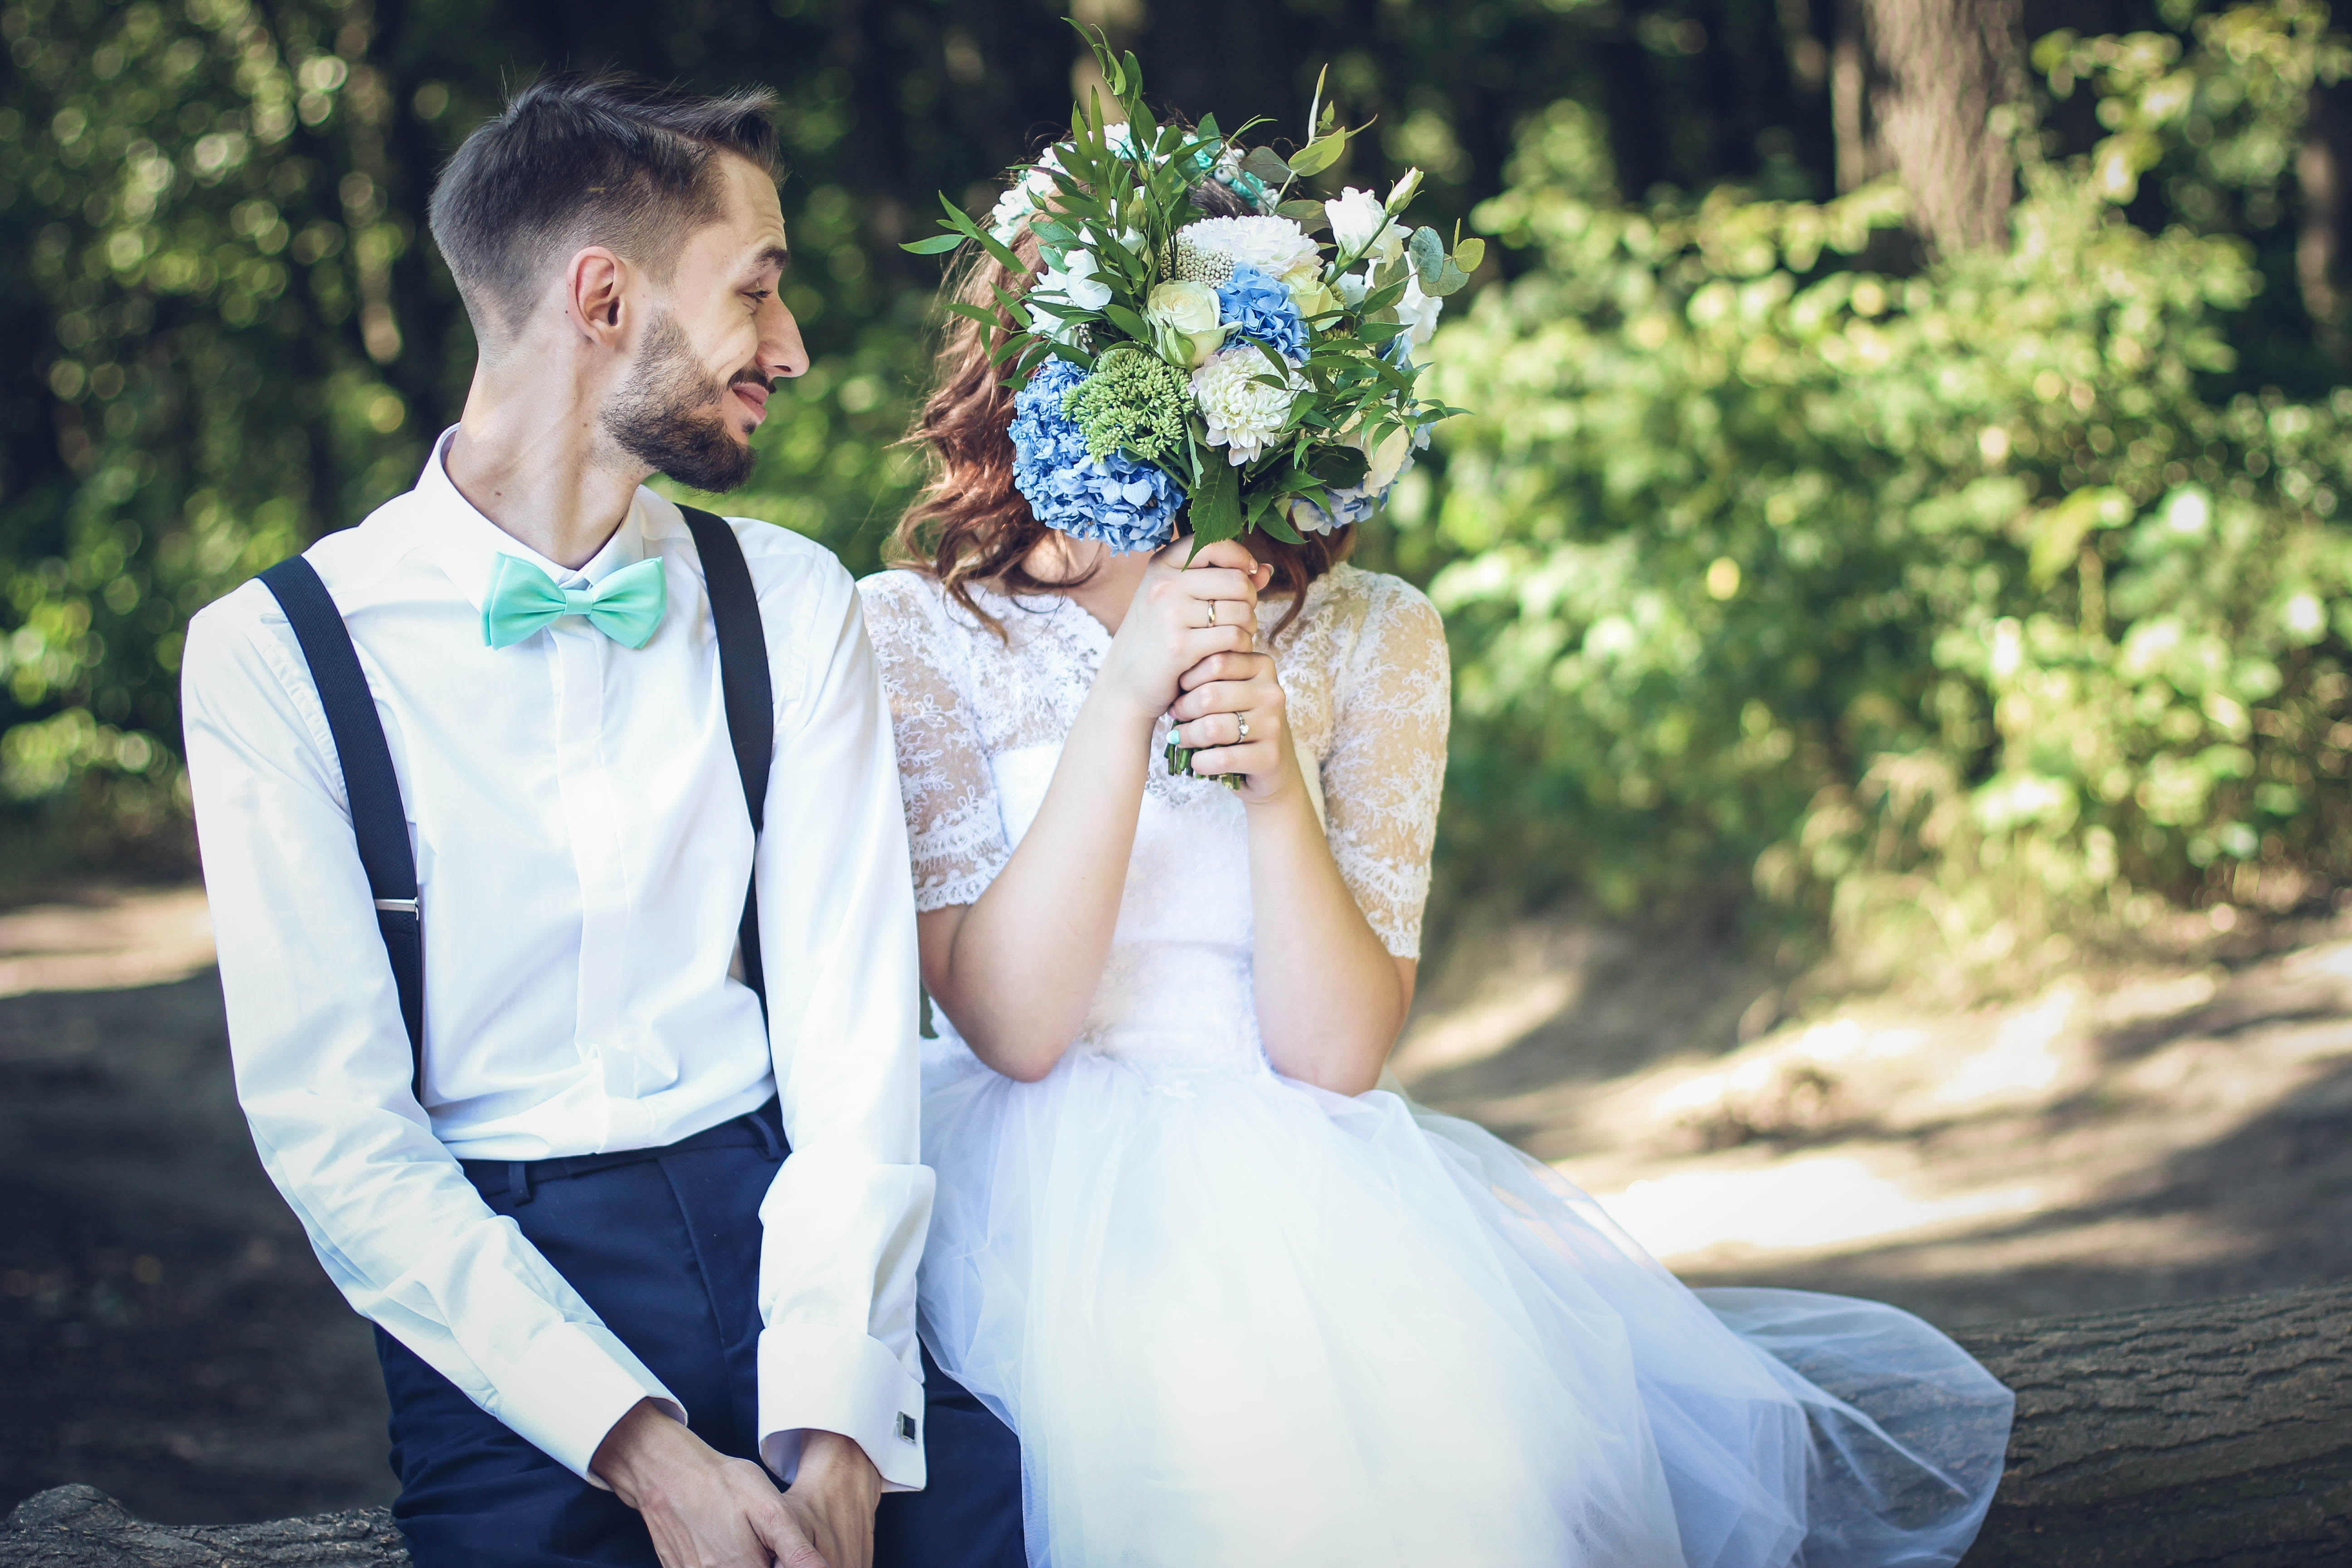 Find out what does marriage means in 21st century